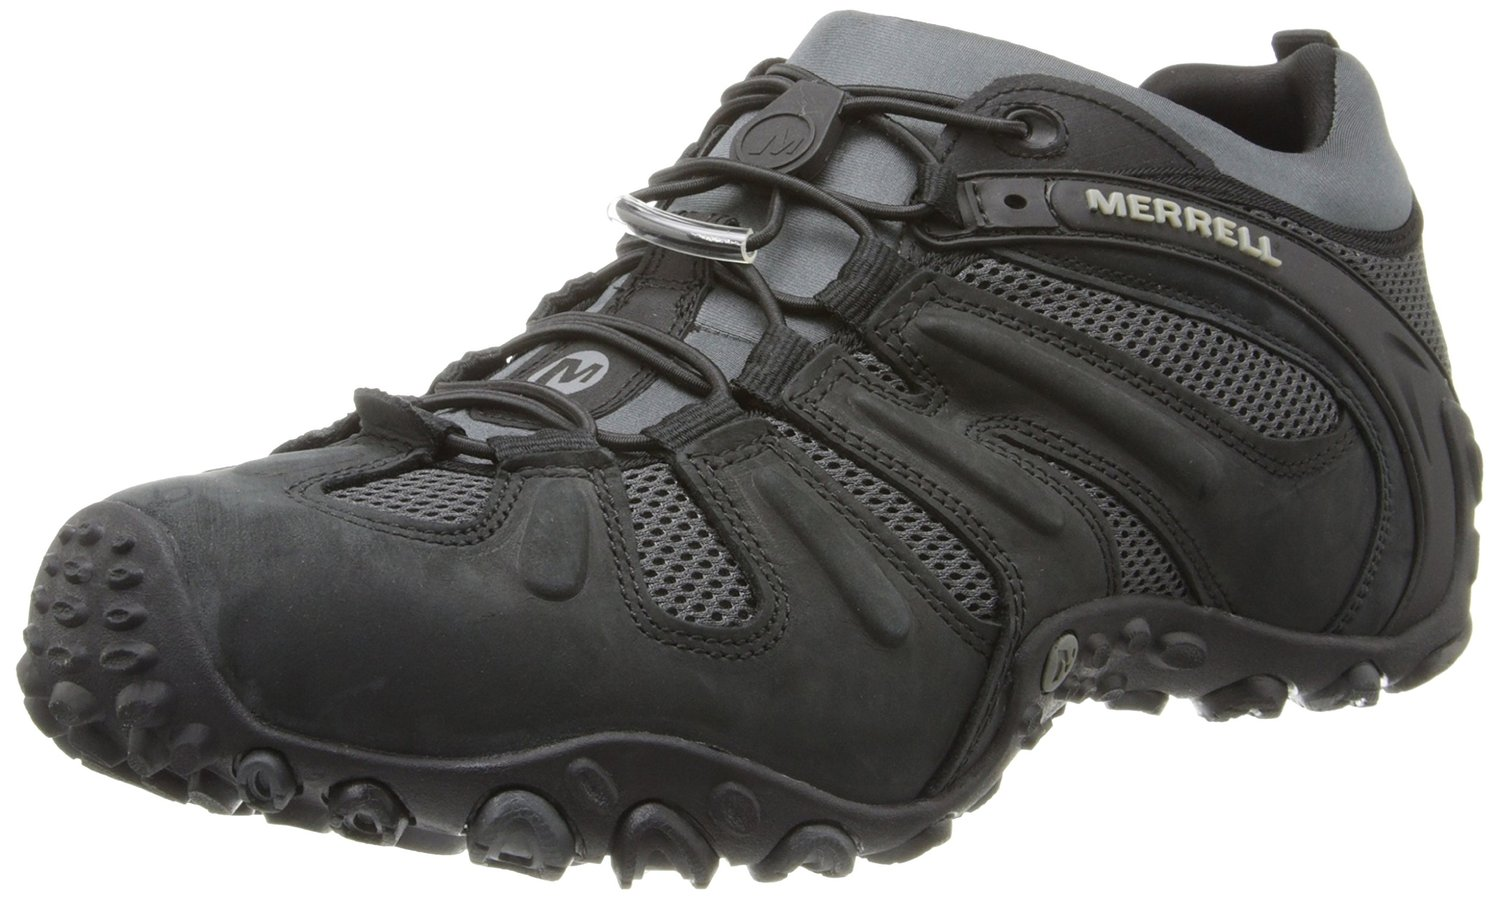 Are Merrell Shoes Good For Walking